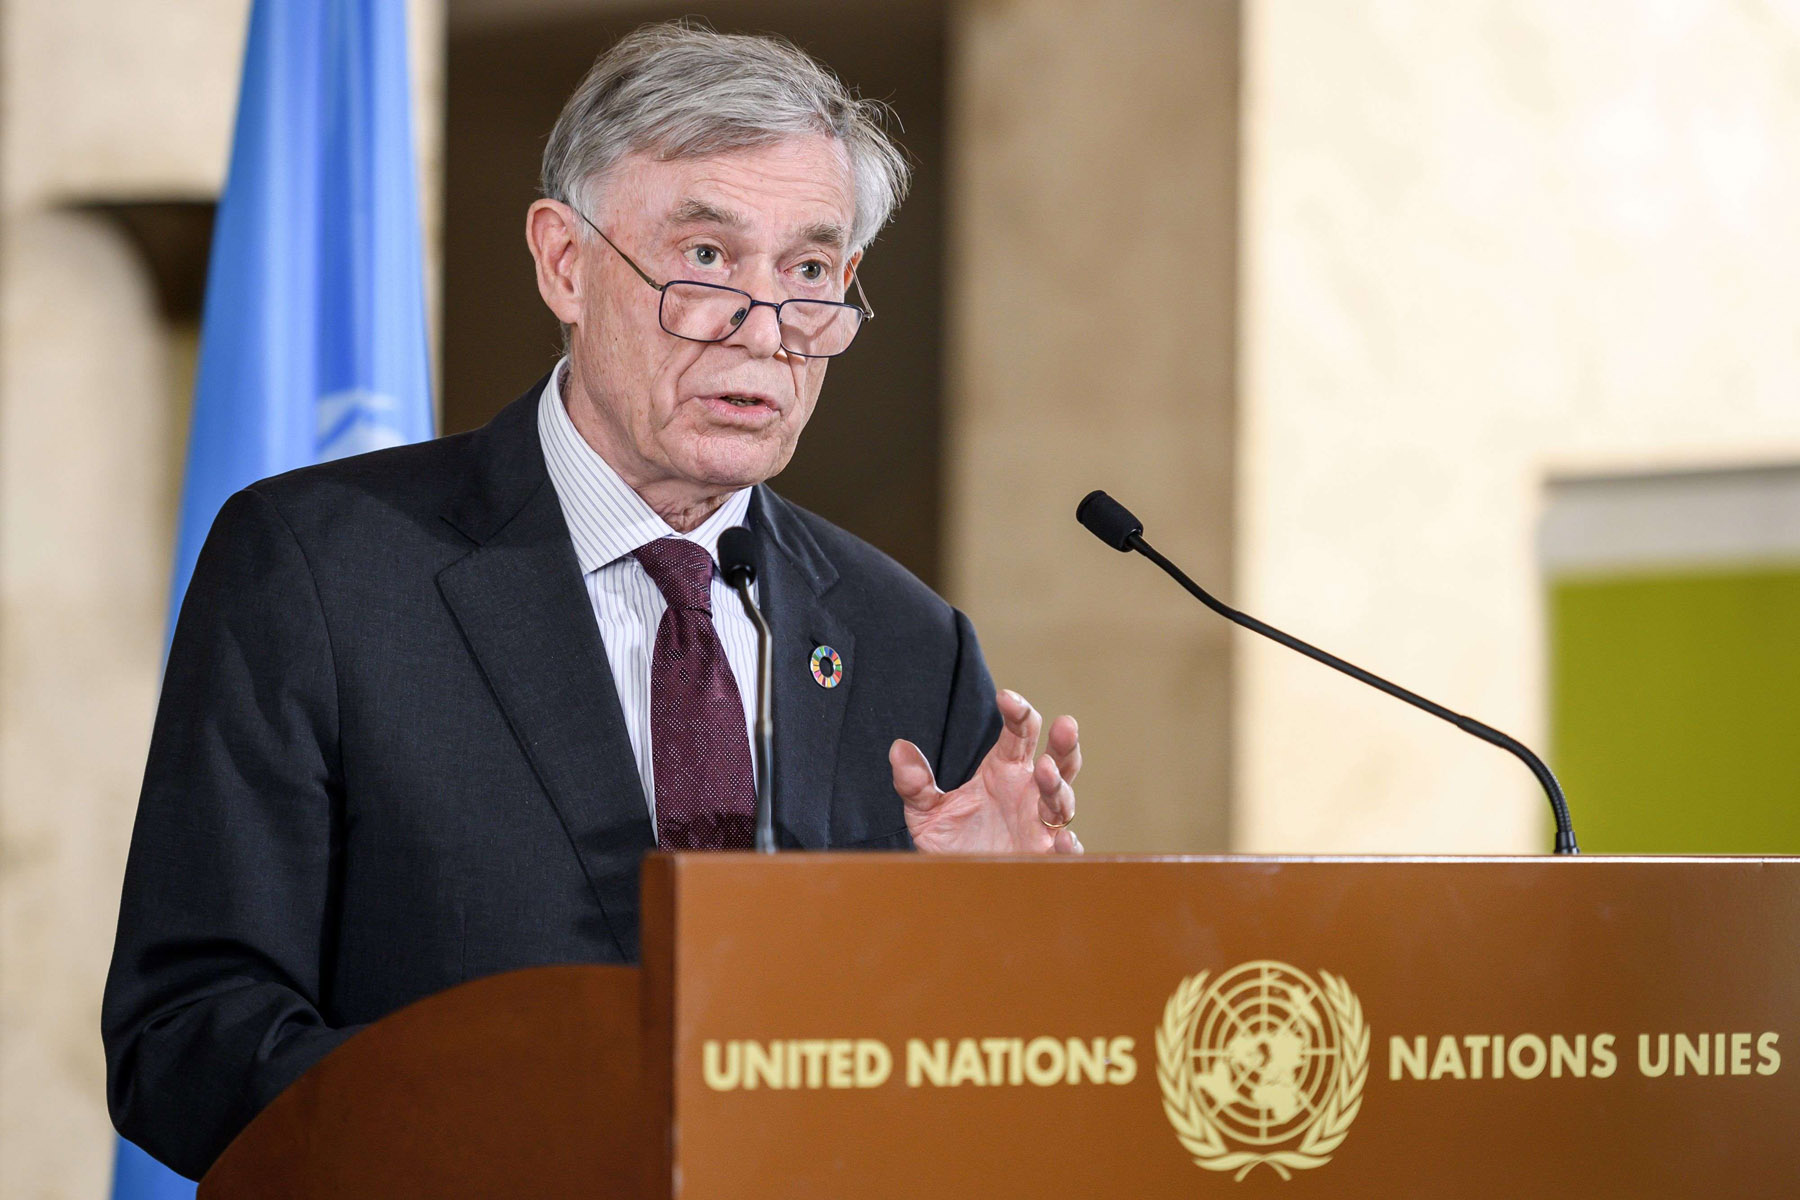 UN Special Envoy Horst Kohler speaks in Geneva following a 2-day round of talks on ending the Western Sahara conflict, March 22. (AFP)